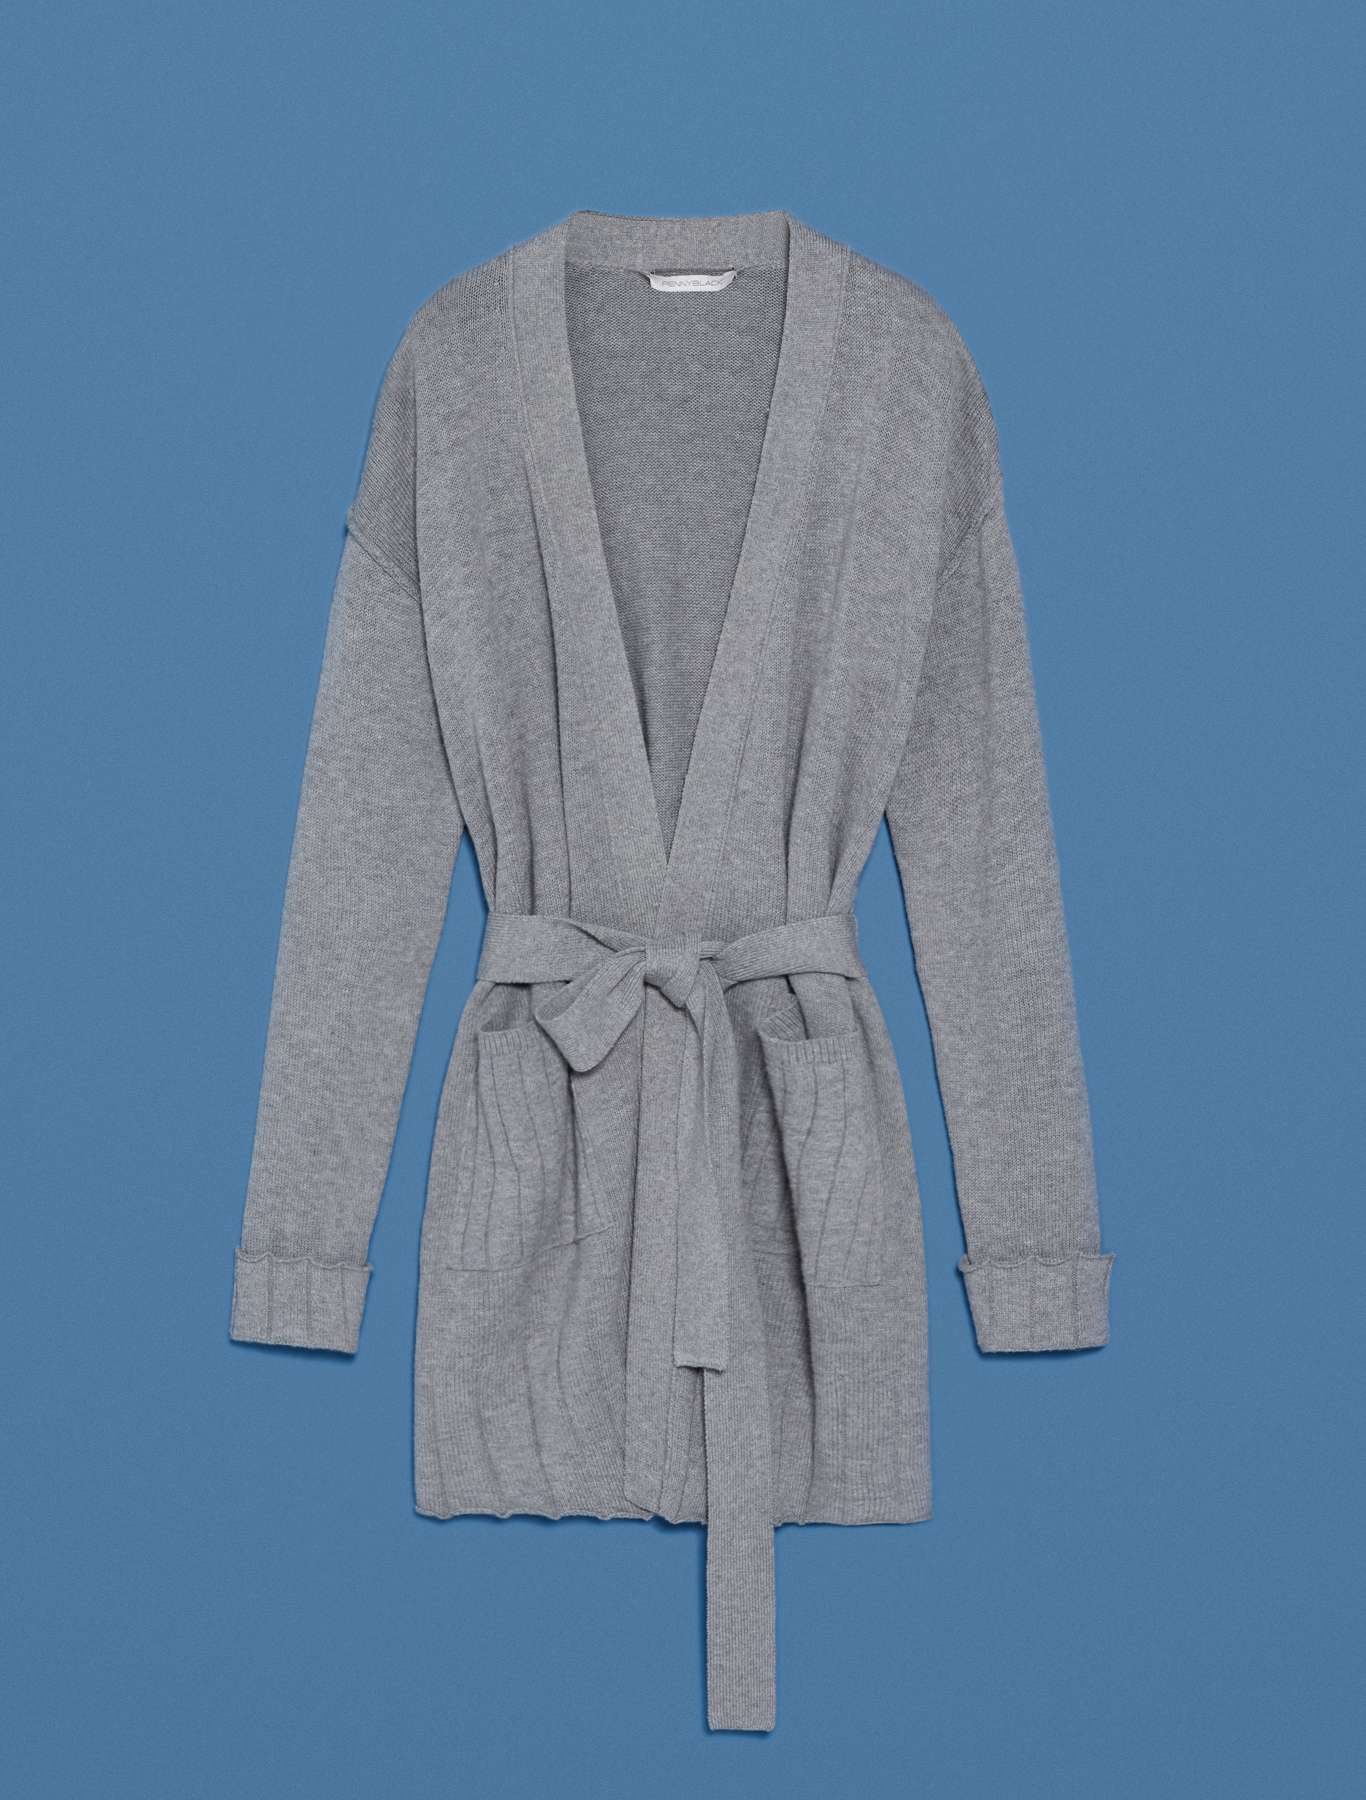 Cardigan with ribbed details - medium grey - pennyblack